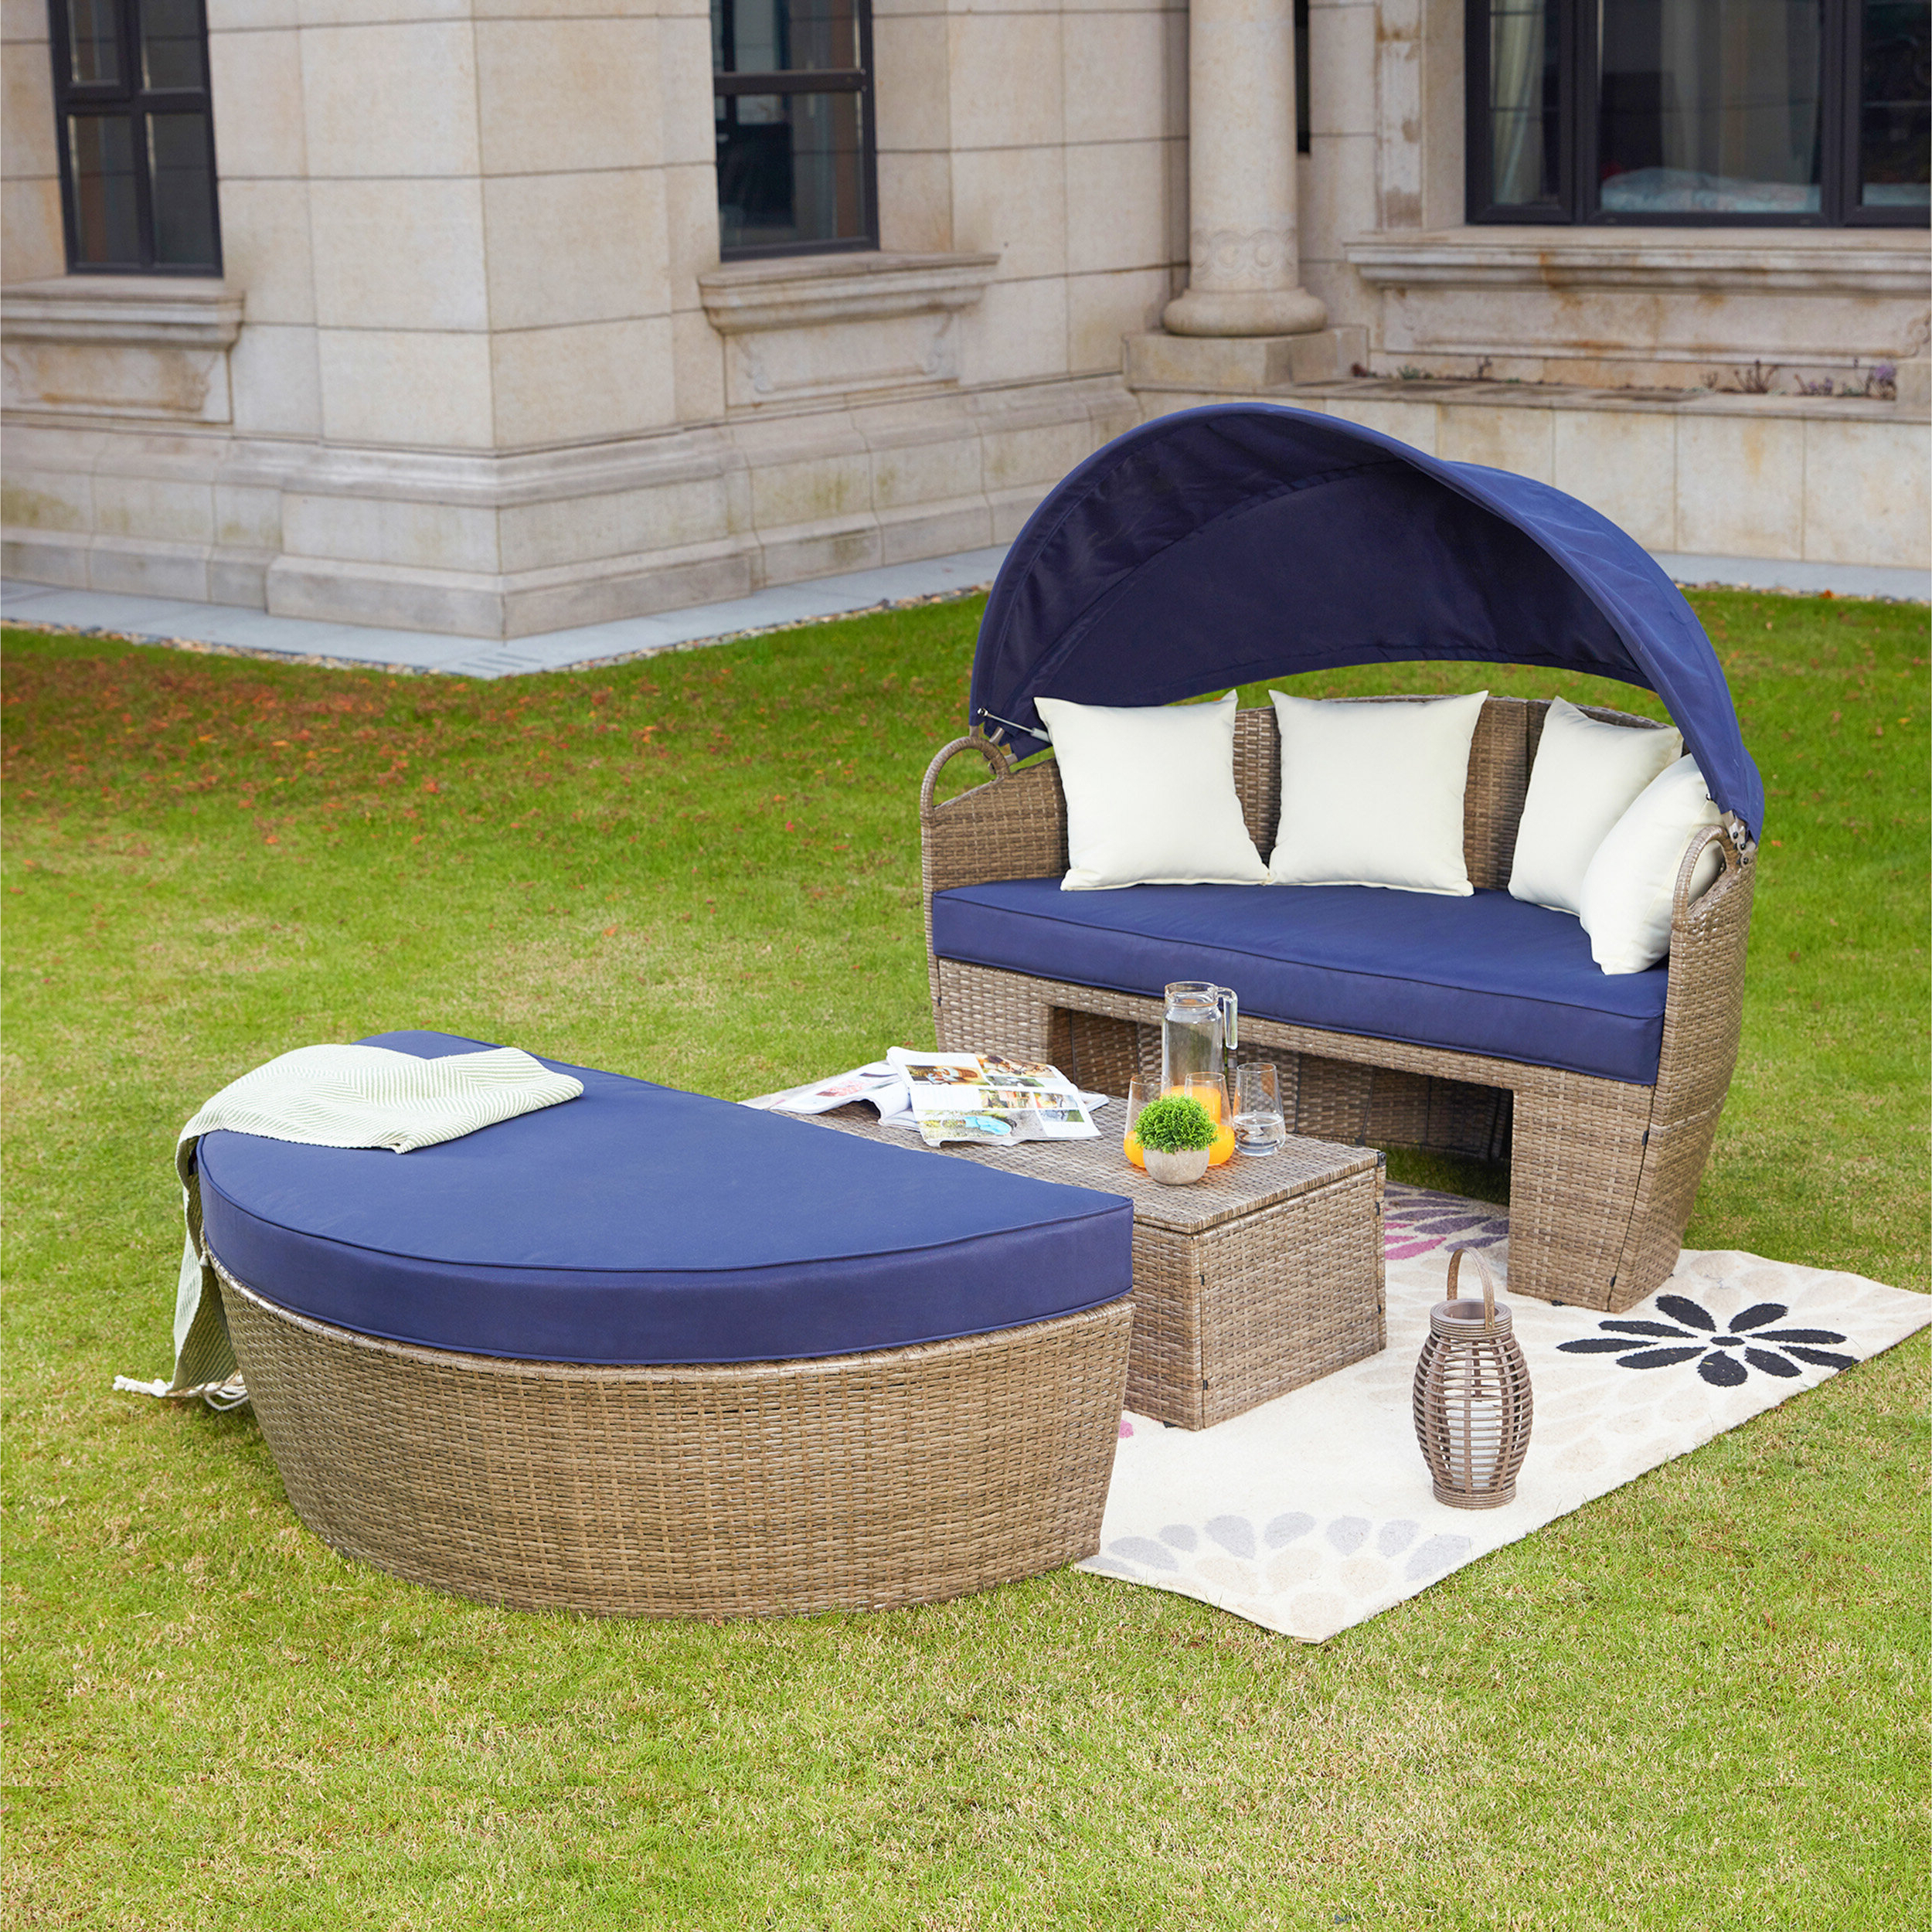 Recent Modern Outdoor Daybeds (View 13 of 20)